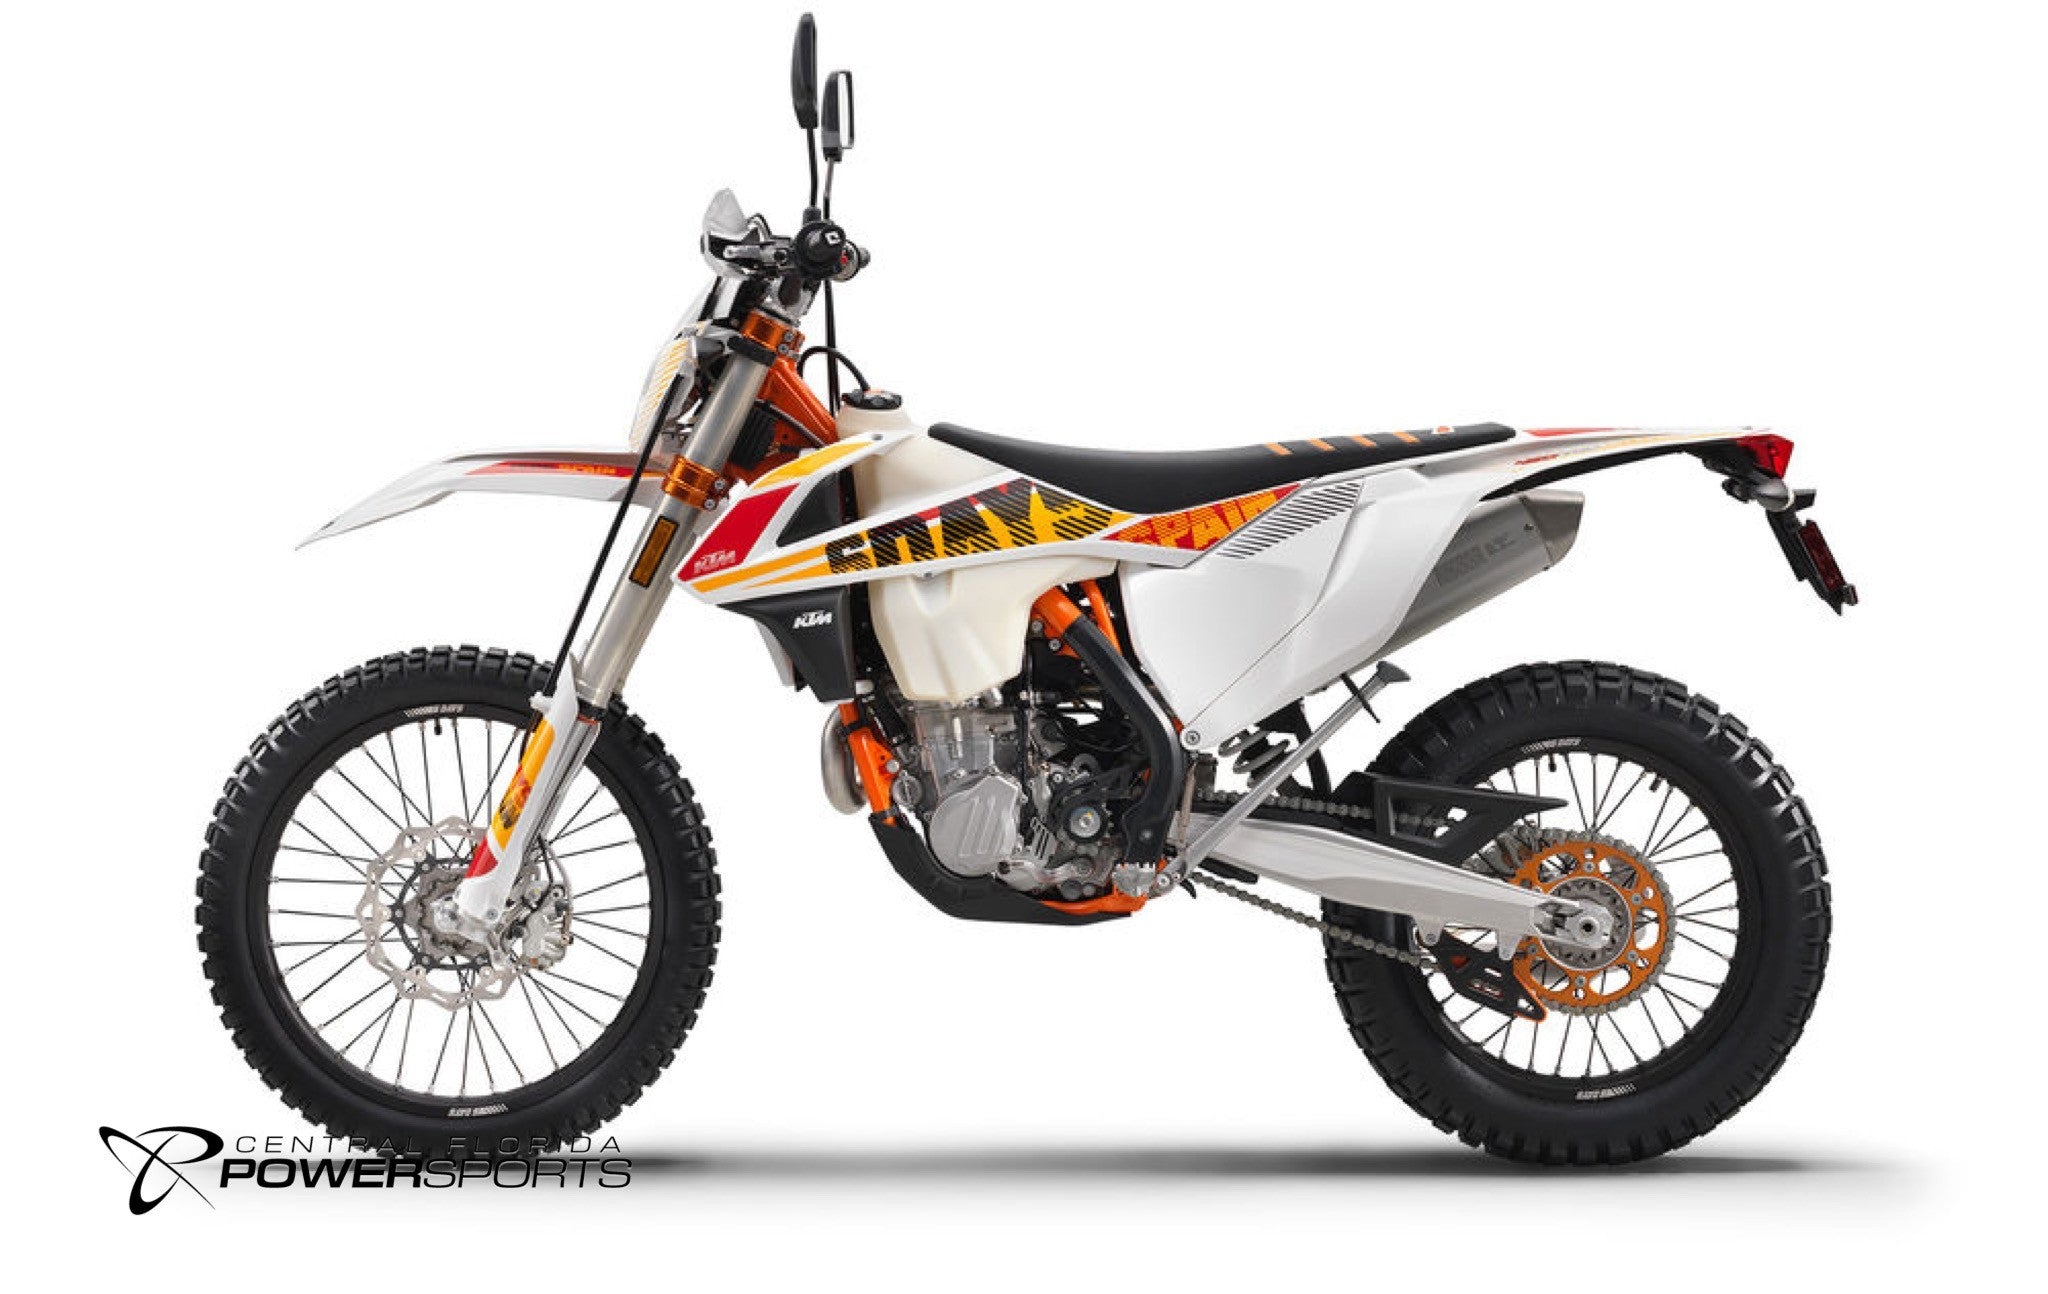 2017 ktm 450 exc f six days off road competition motorcycle ama central florida powersports. Black Bedroom Furniture Sets. Home Design Ideas